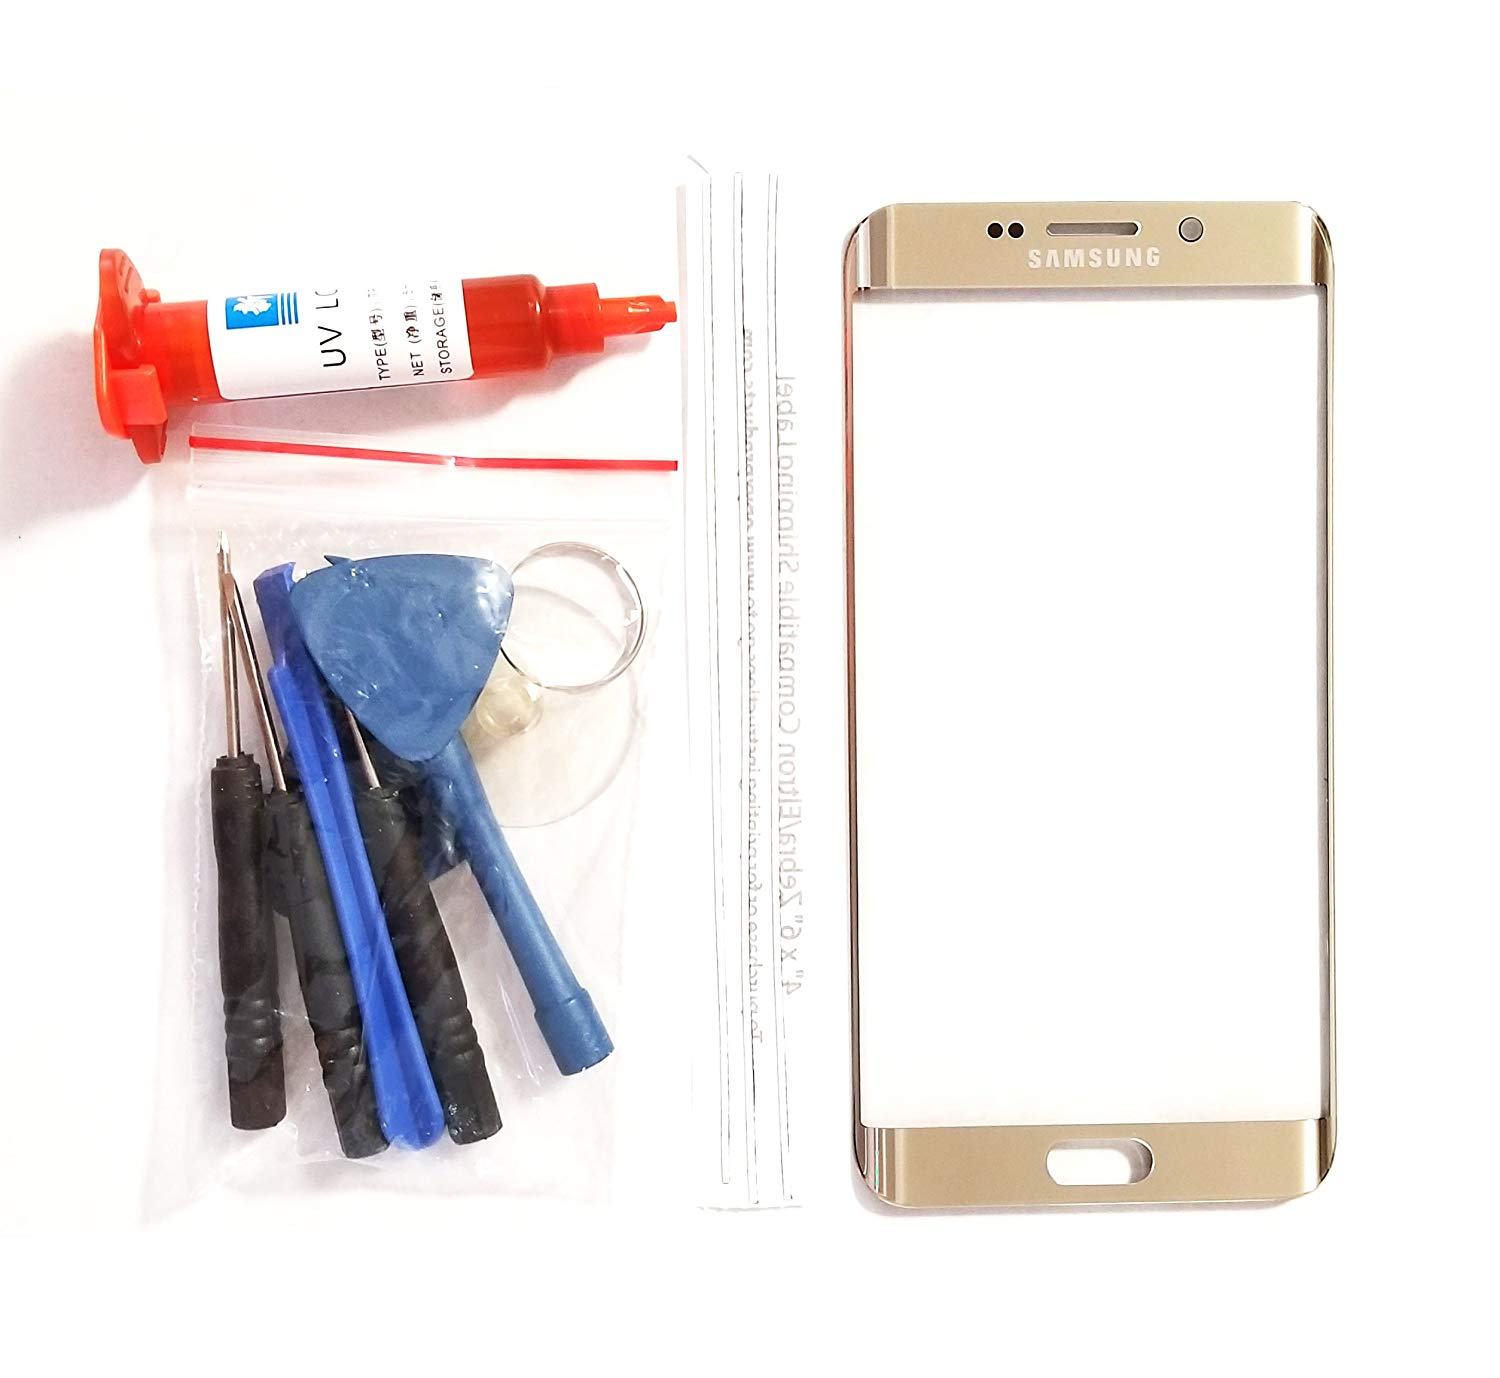 (md0410) OEM GOLD Front Outer Lens Glass Screen Replacement For Samsung Galaxy S6 EDGE PLUS G928 + Tools + 5ml UV LOCA Liquid Glue Adhesive (LCD and Digitizer not included)